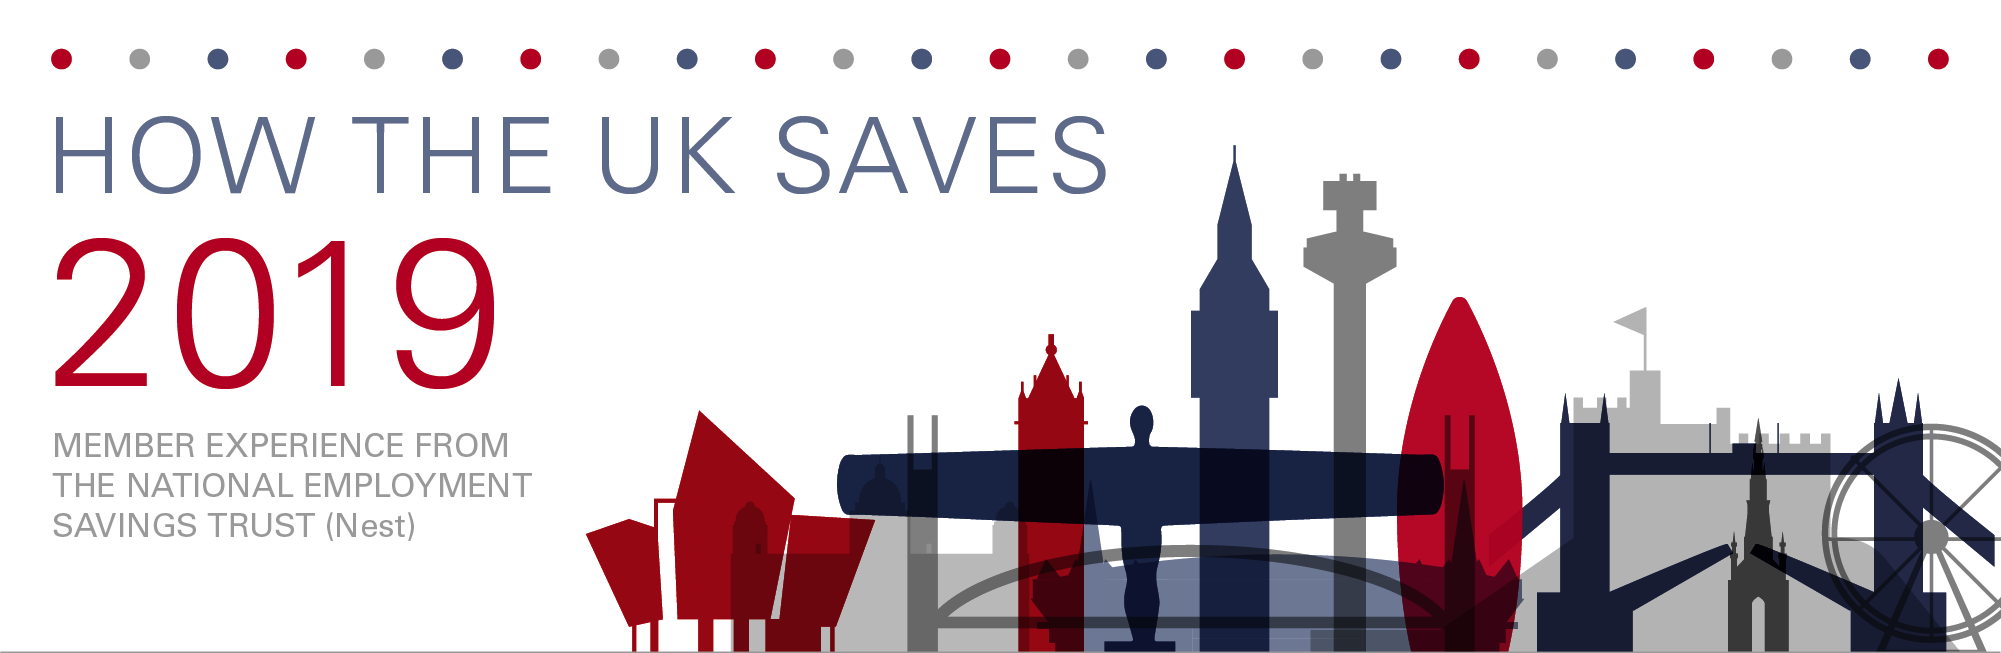 How the UK Saves